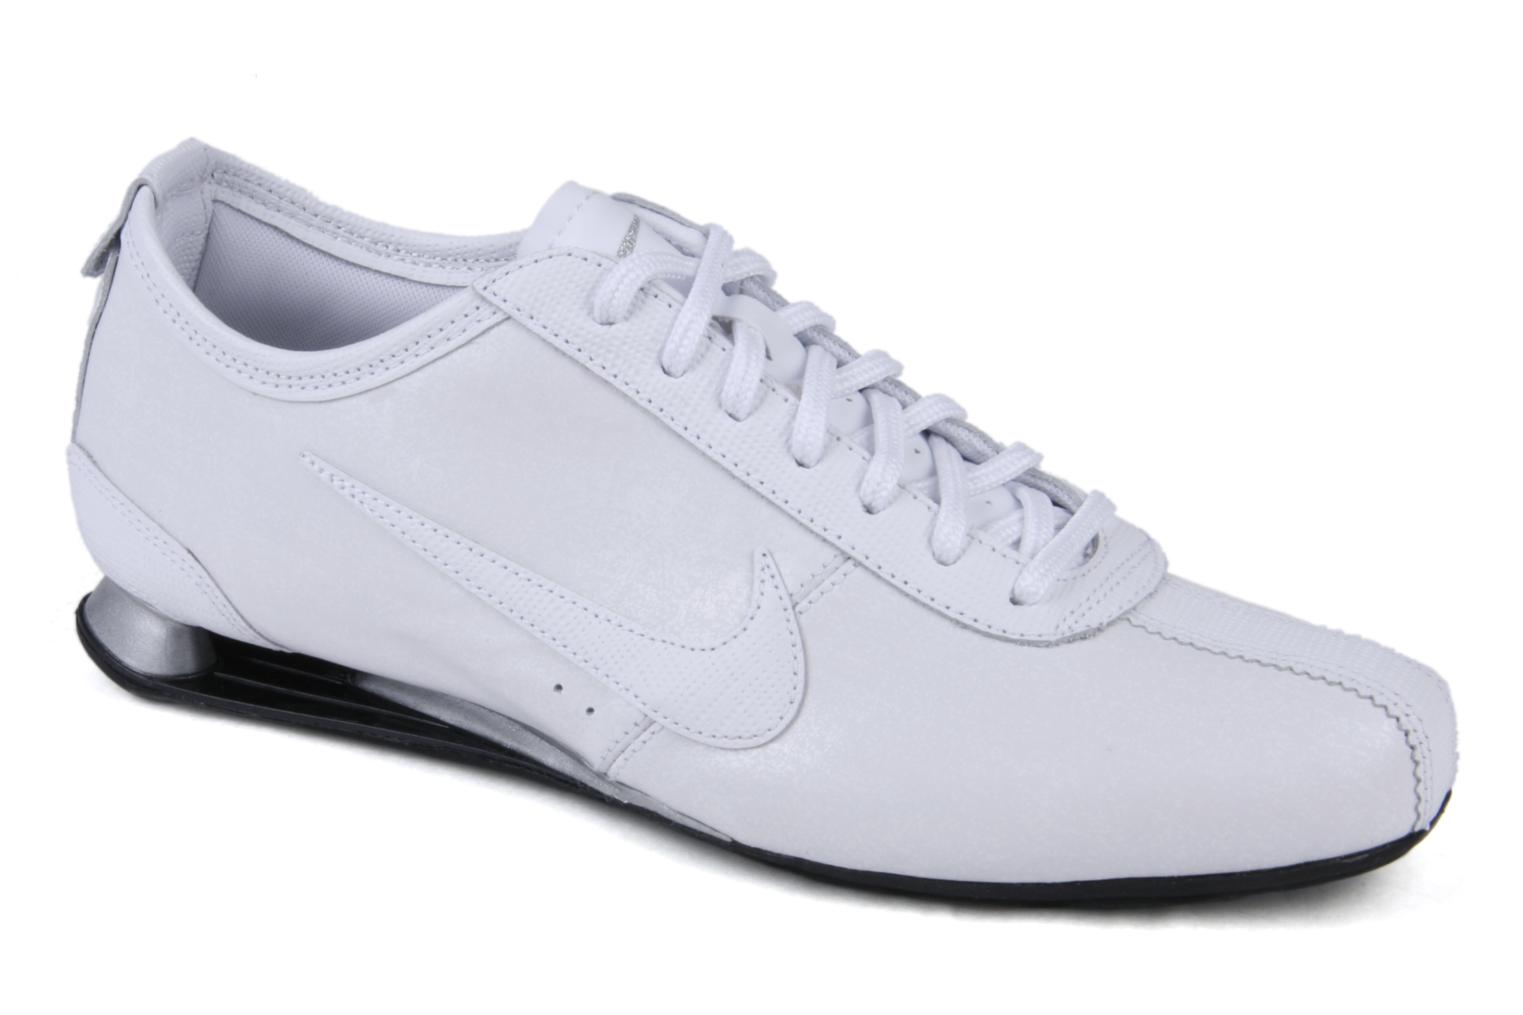 watch 7c67f b652e store nike shox rivalry trainers nike nike shox rivalry white detailed view  pair view fzxeafz 8e6bf